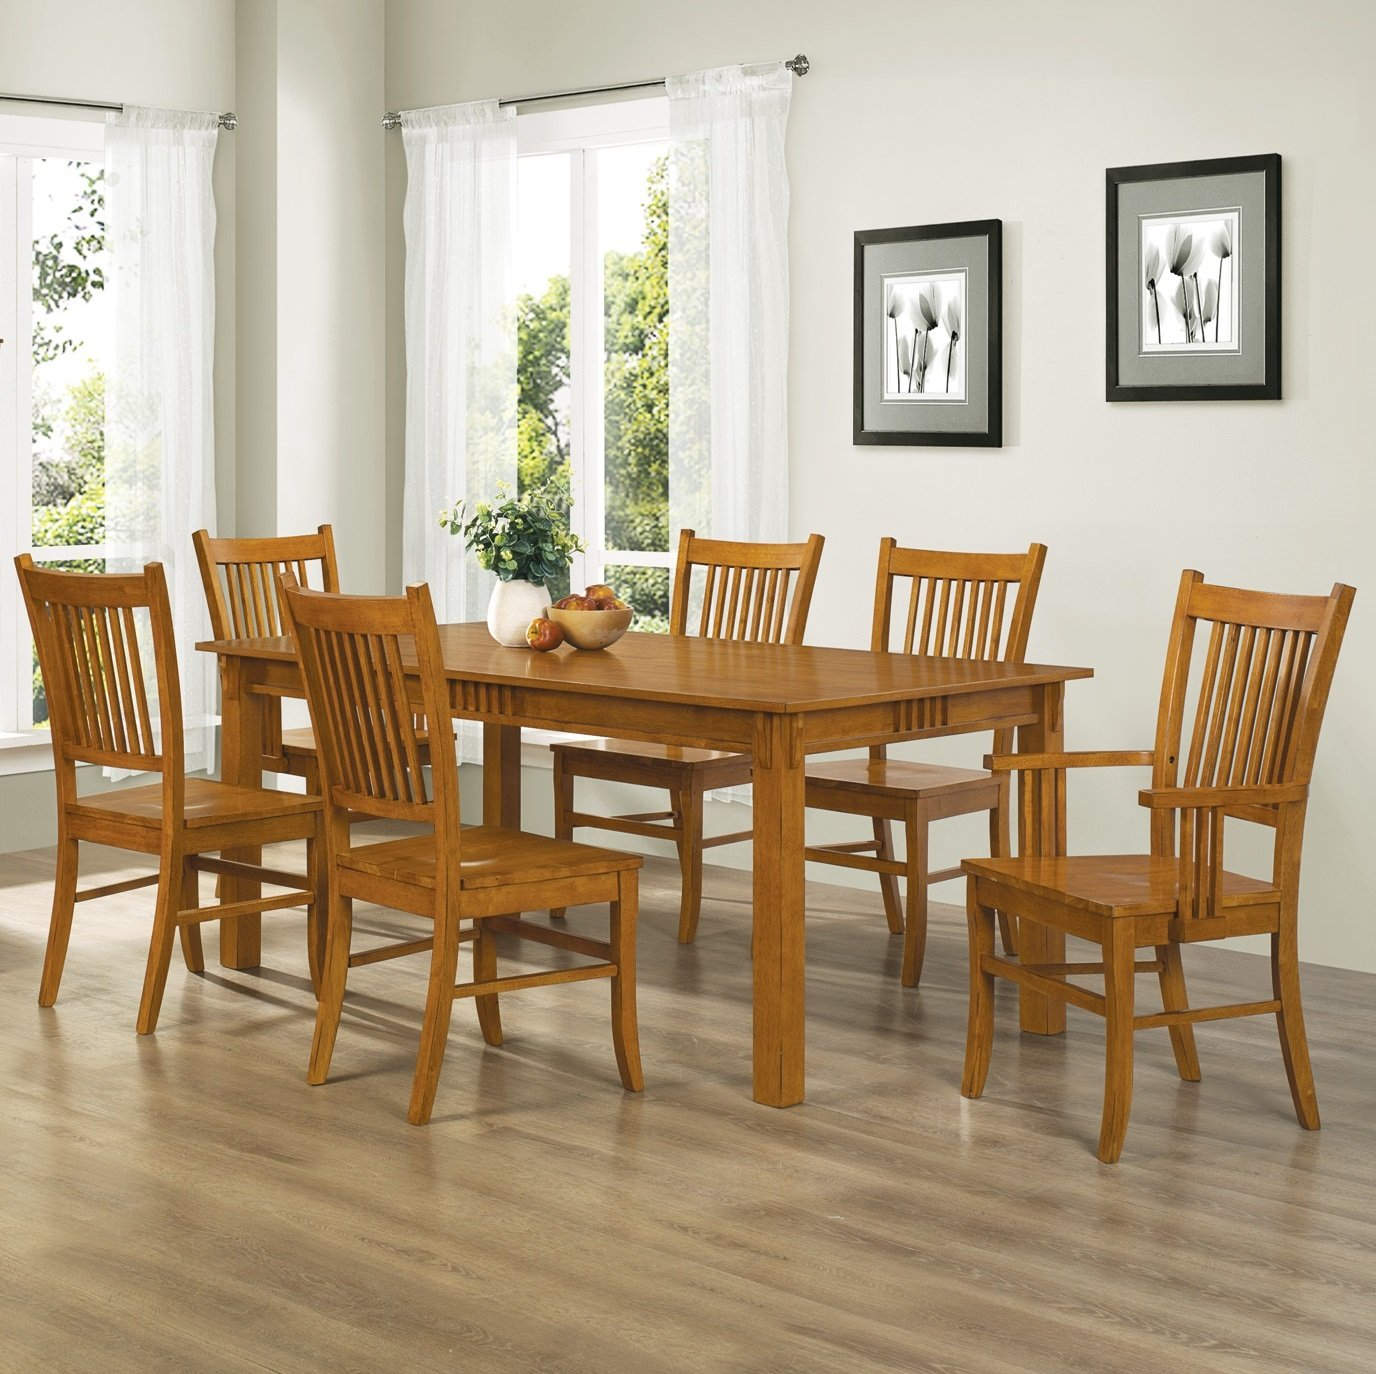 Amazon.com - Coaster Home Furnishings 7-Piece Mission Style Solid Hardwood Dining Table u0026 Chairs Set - Table u0026 Chair Sets & Amazon.com - Coaster Home Furnishings 7-Piece Mission Style Solid ...